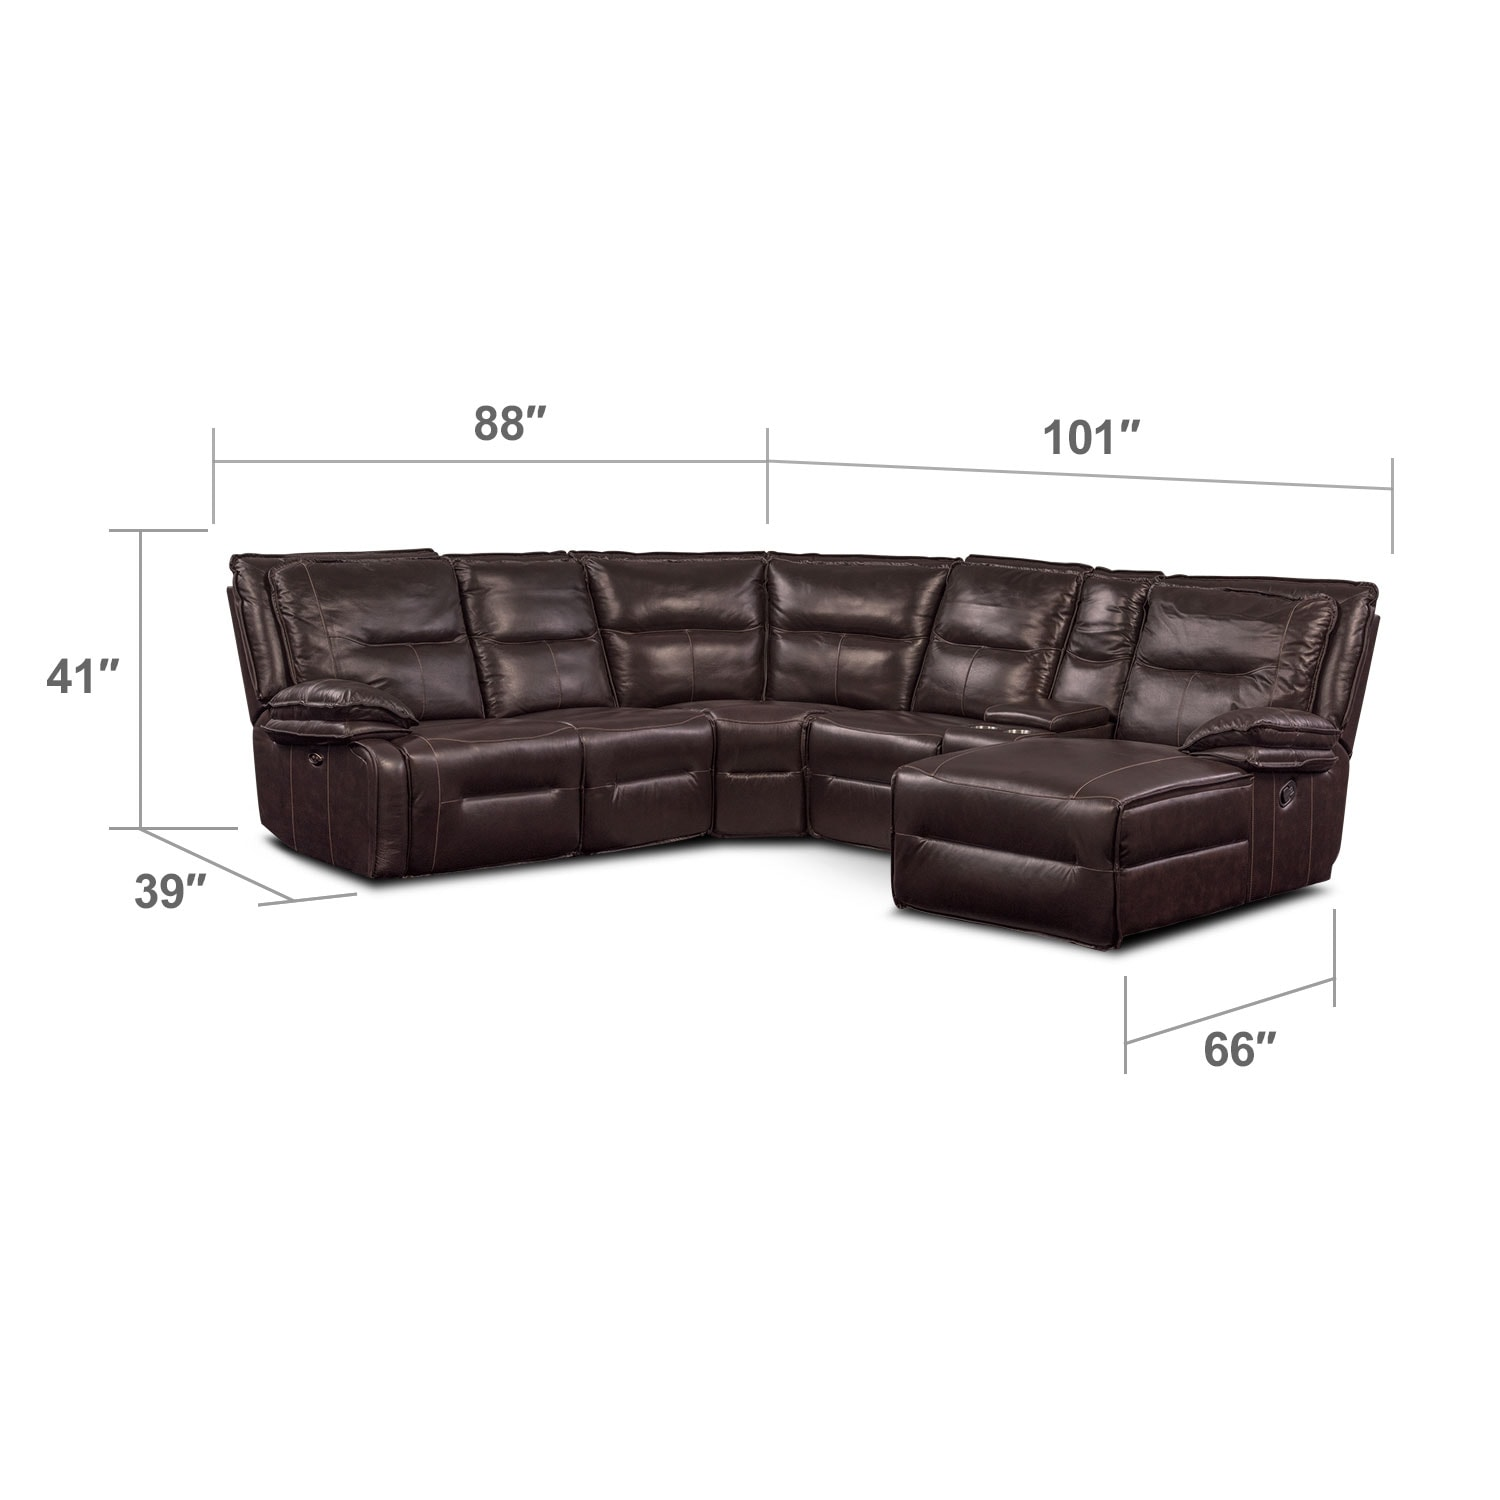 Living Room Furniture - Nikki 6-Piece Power Reclining Sectional with 1 Recliner and Right-Facing Chaise - Brown